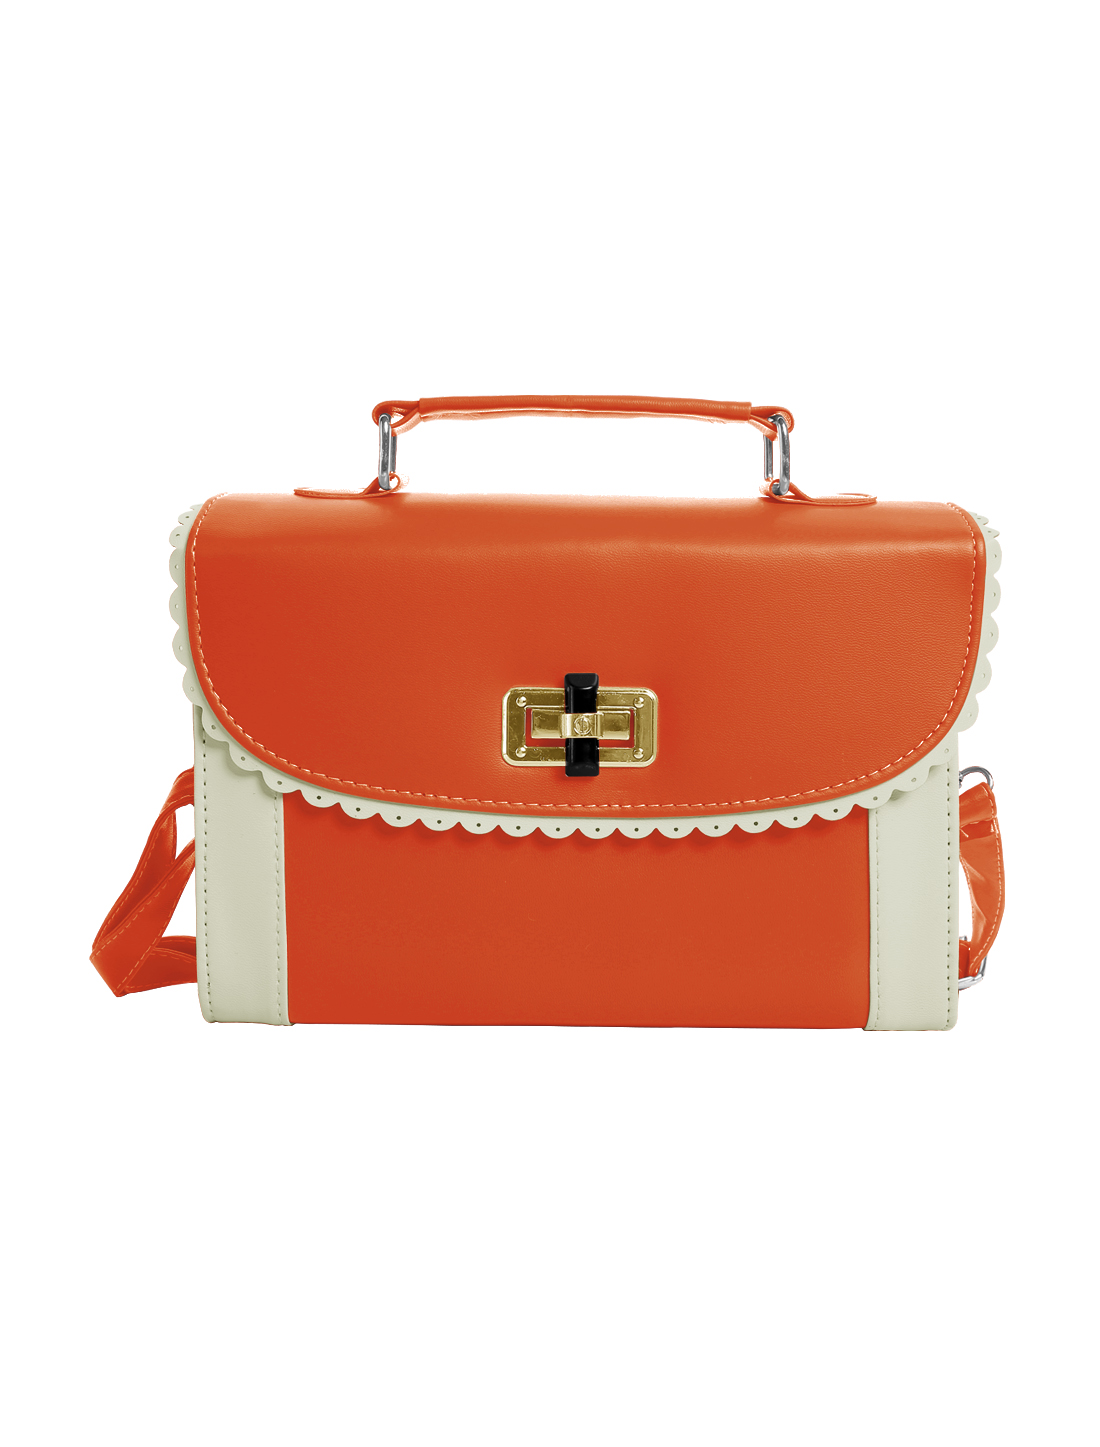 Ladies Fully Lined Scalloped Trim Detail Turn-Lock Clasp Totes Orange